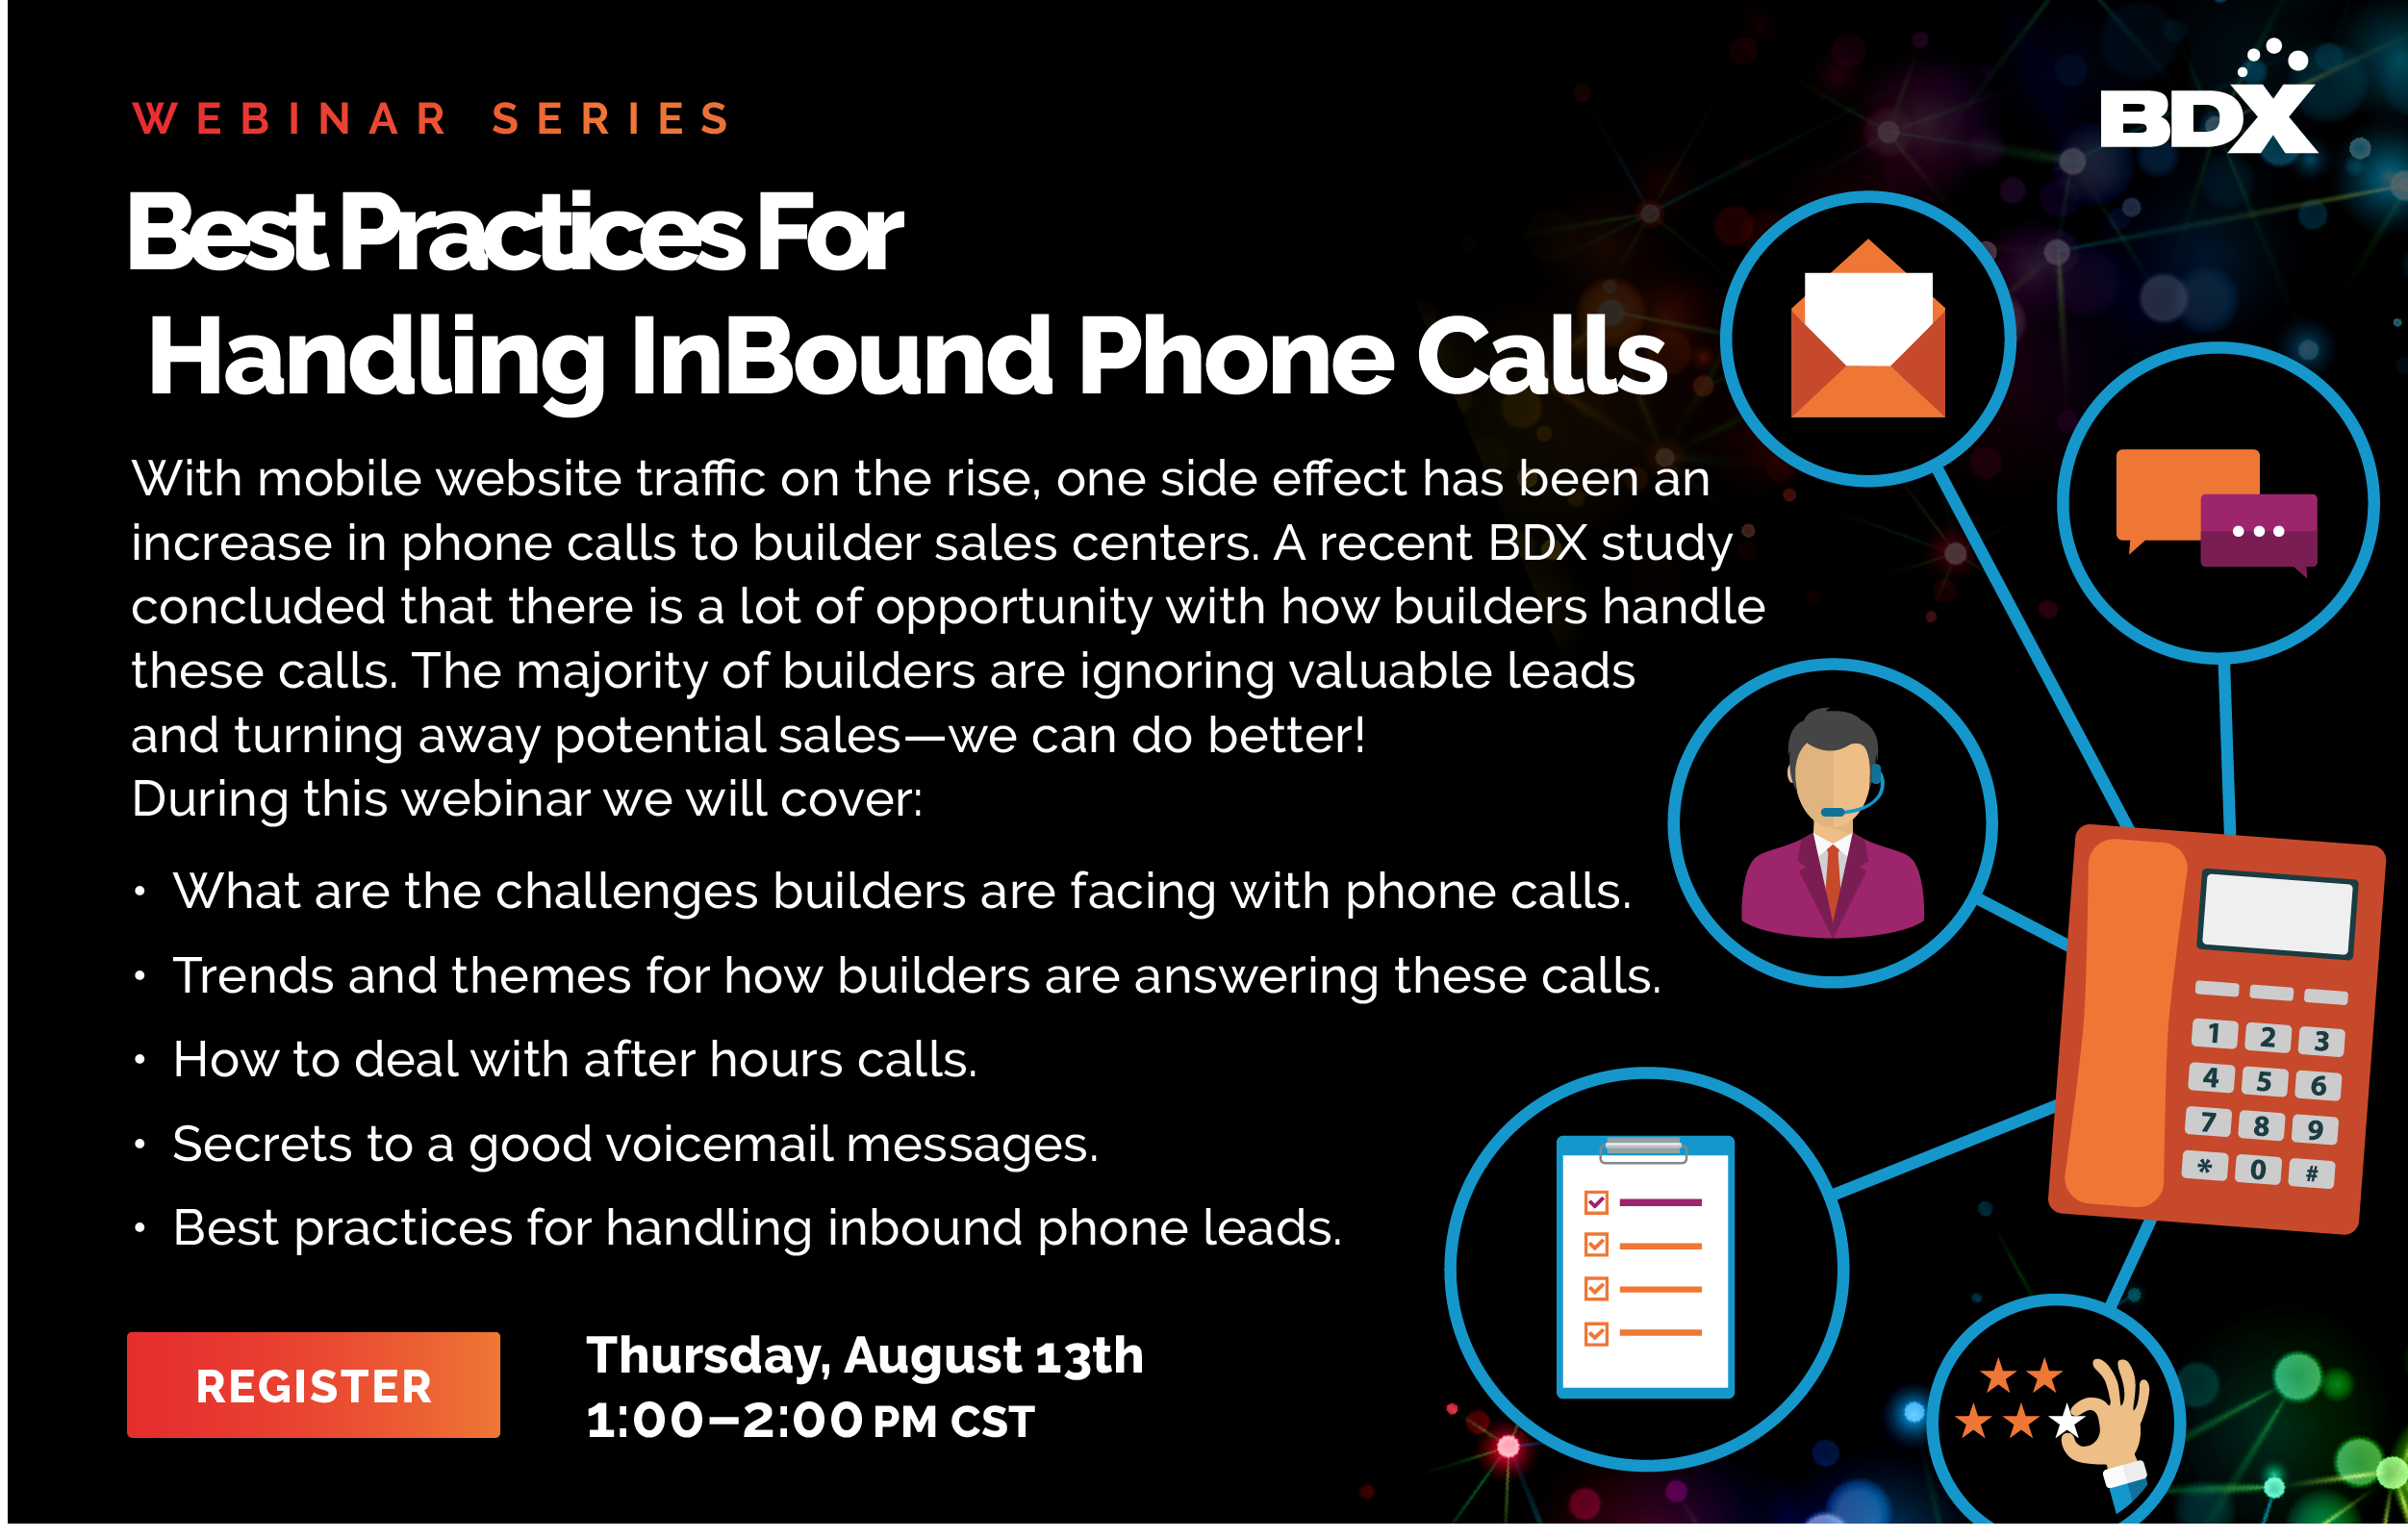 Webinar Discusses How Builders Are Overlooking Valuable Phone Leads